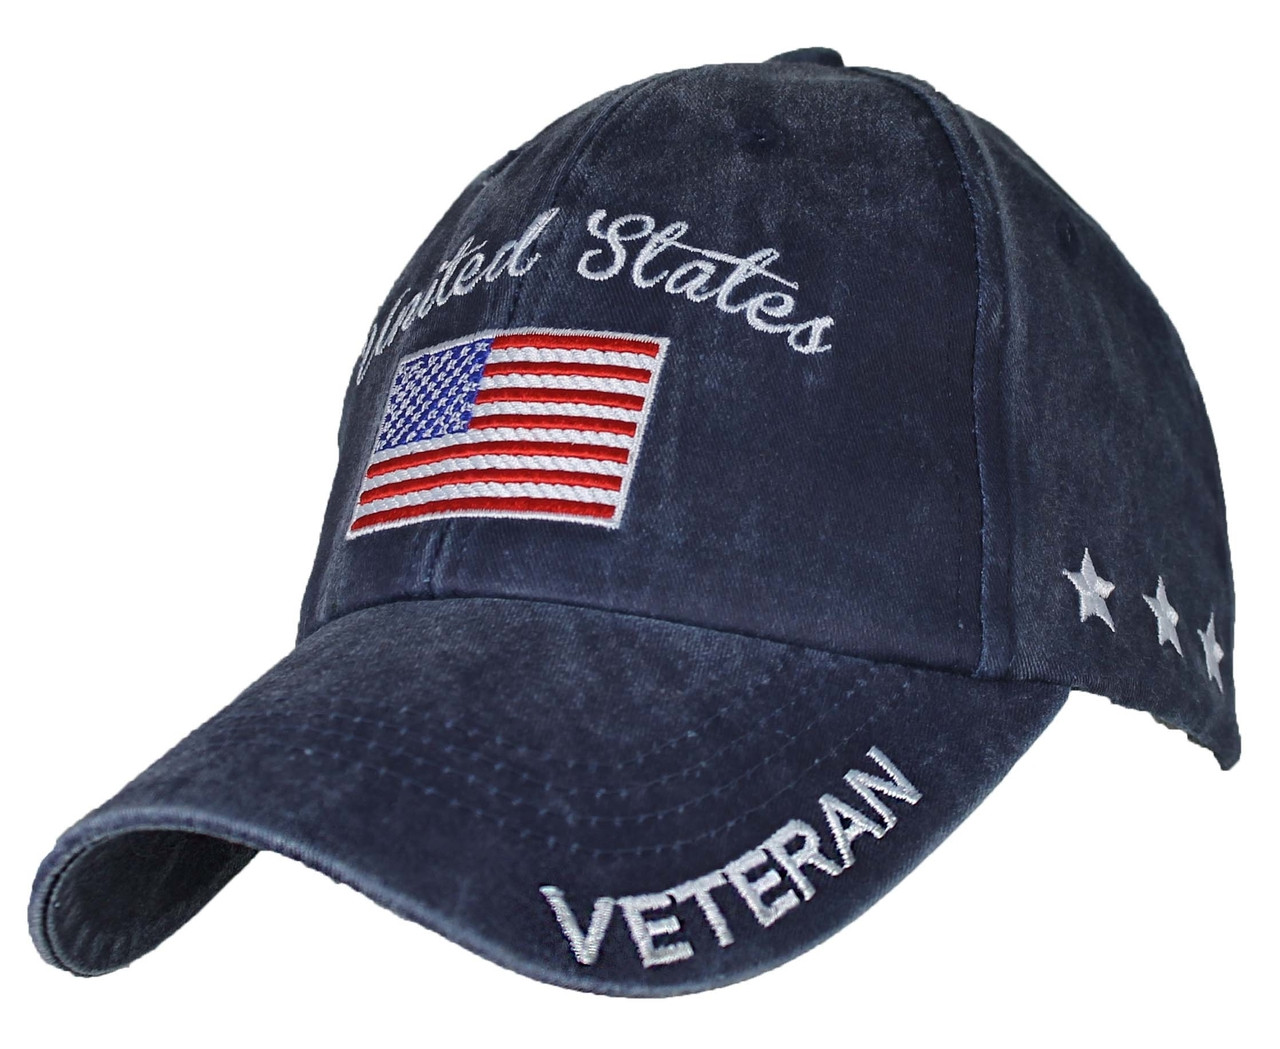 64c5f9a681b0f US Military Veteran - U.S. Military with Flag Washed Navy Blue Baseball Cap  Hat